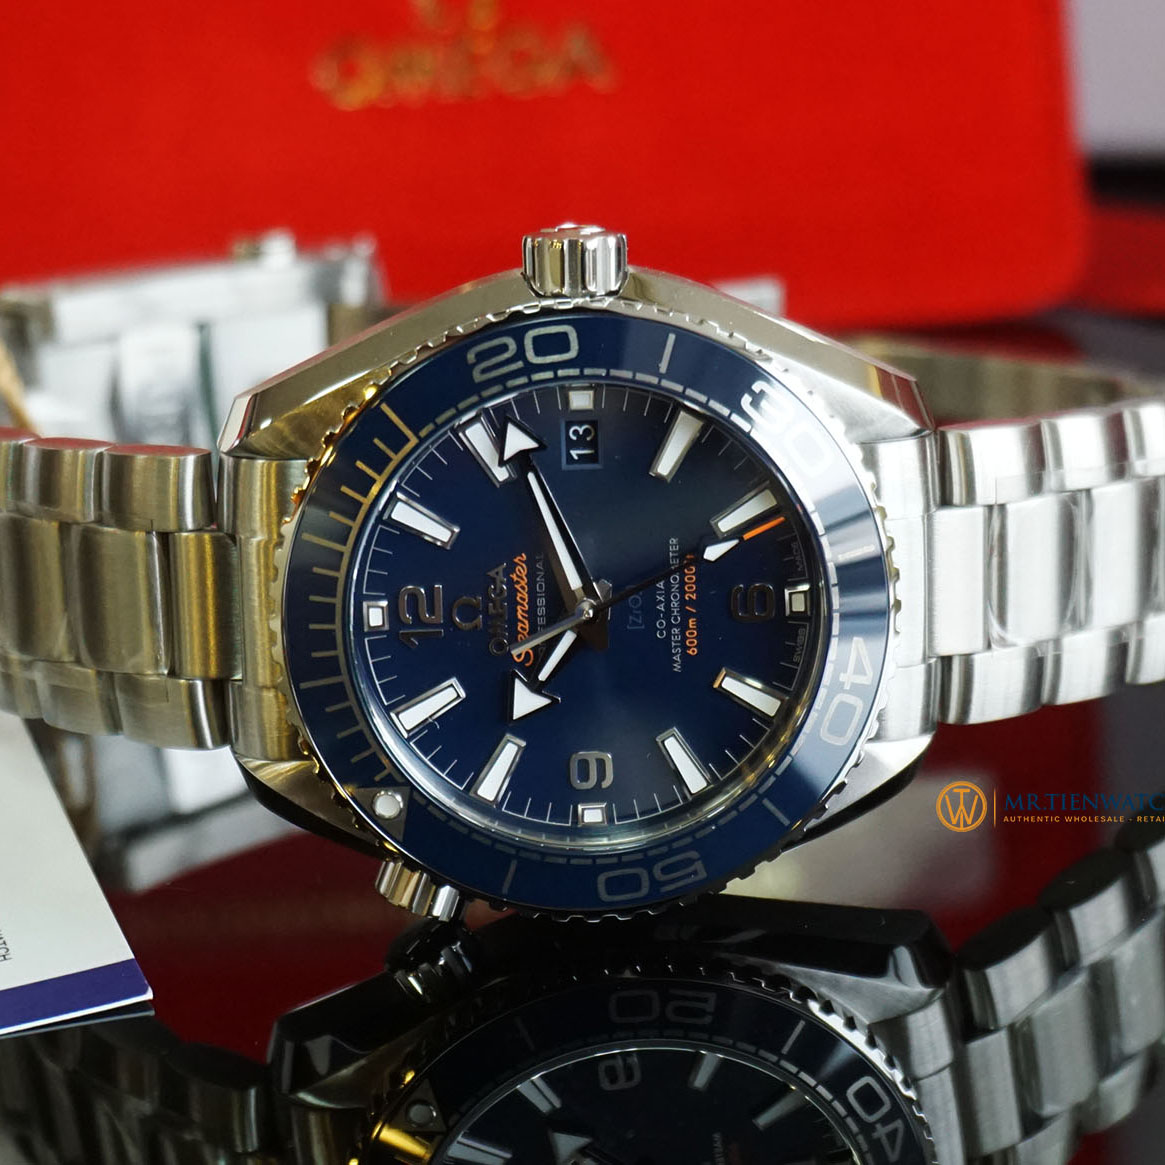 OMEGA SEAMASTER PLANET OCEAN 600M CO‑AXIAL MASTER CHRONOMETER 39.5 MM 215.30.40.20.03.001 Thép không gỉ - Steel on Steel